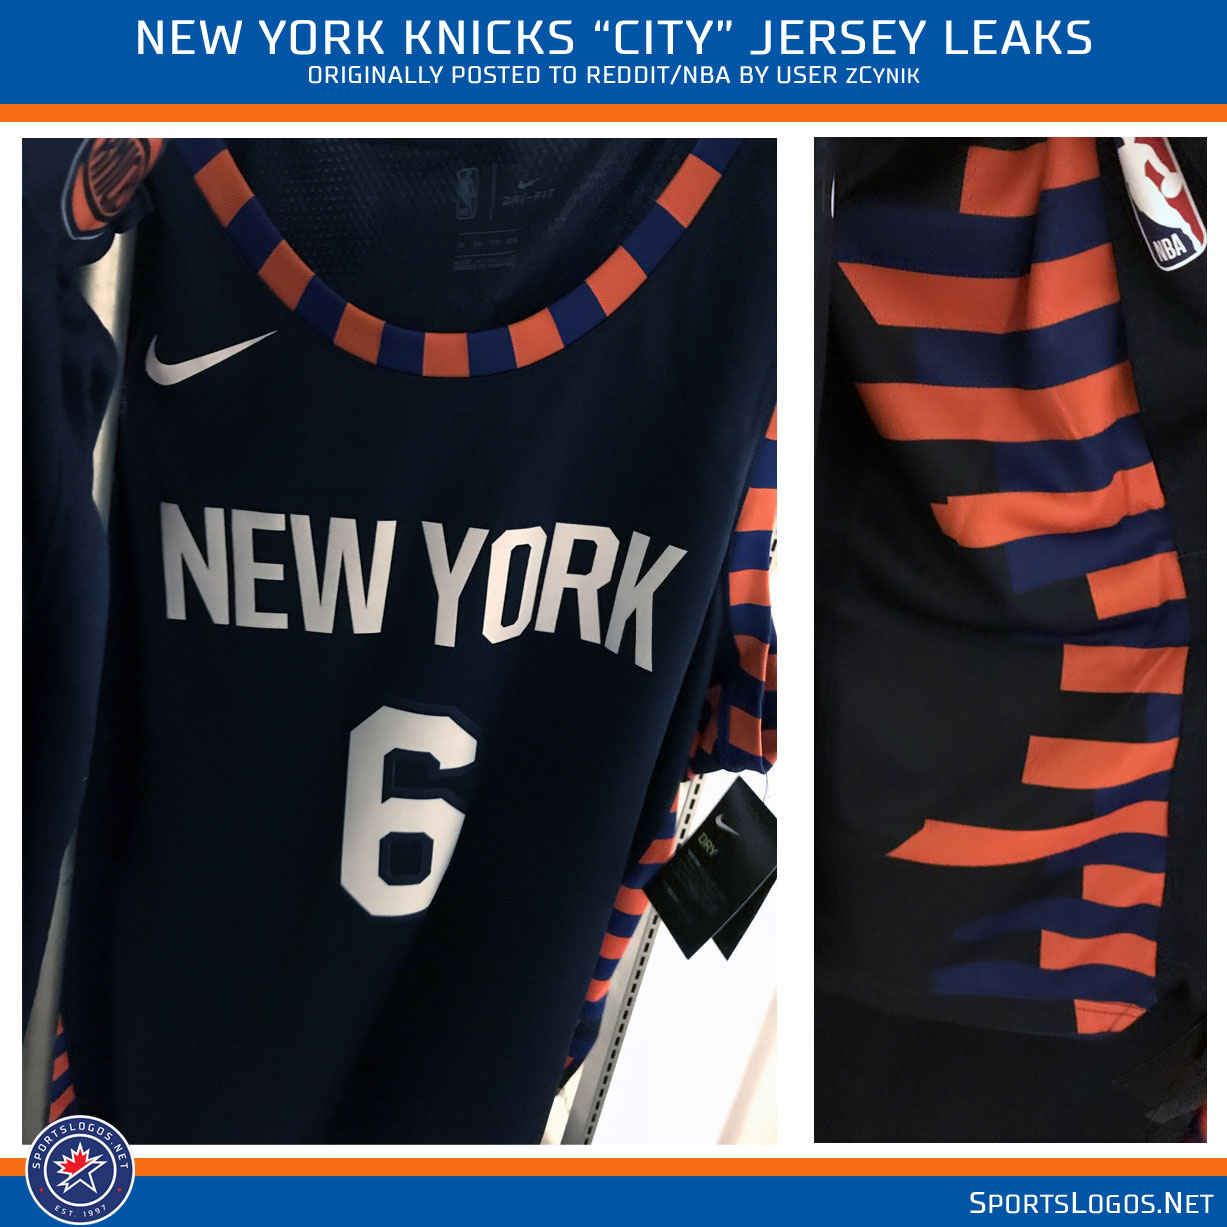 4c0a4639a981 More NBA City Uniform Leaks  Nets